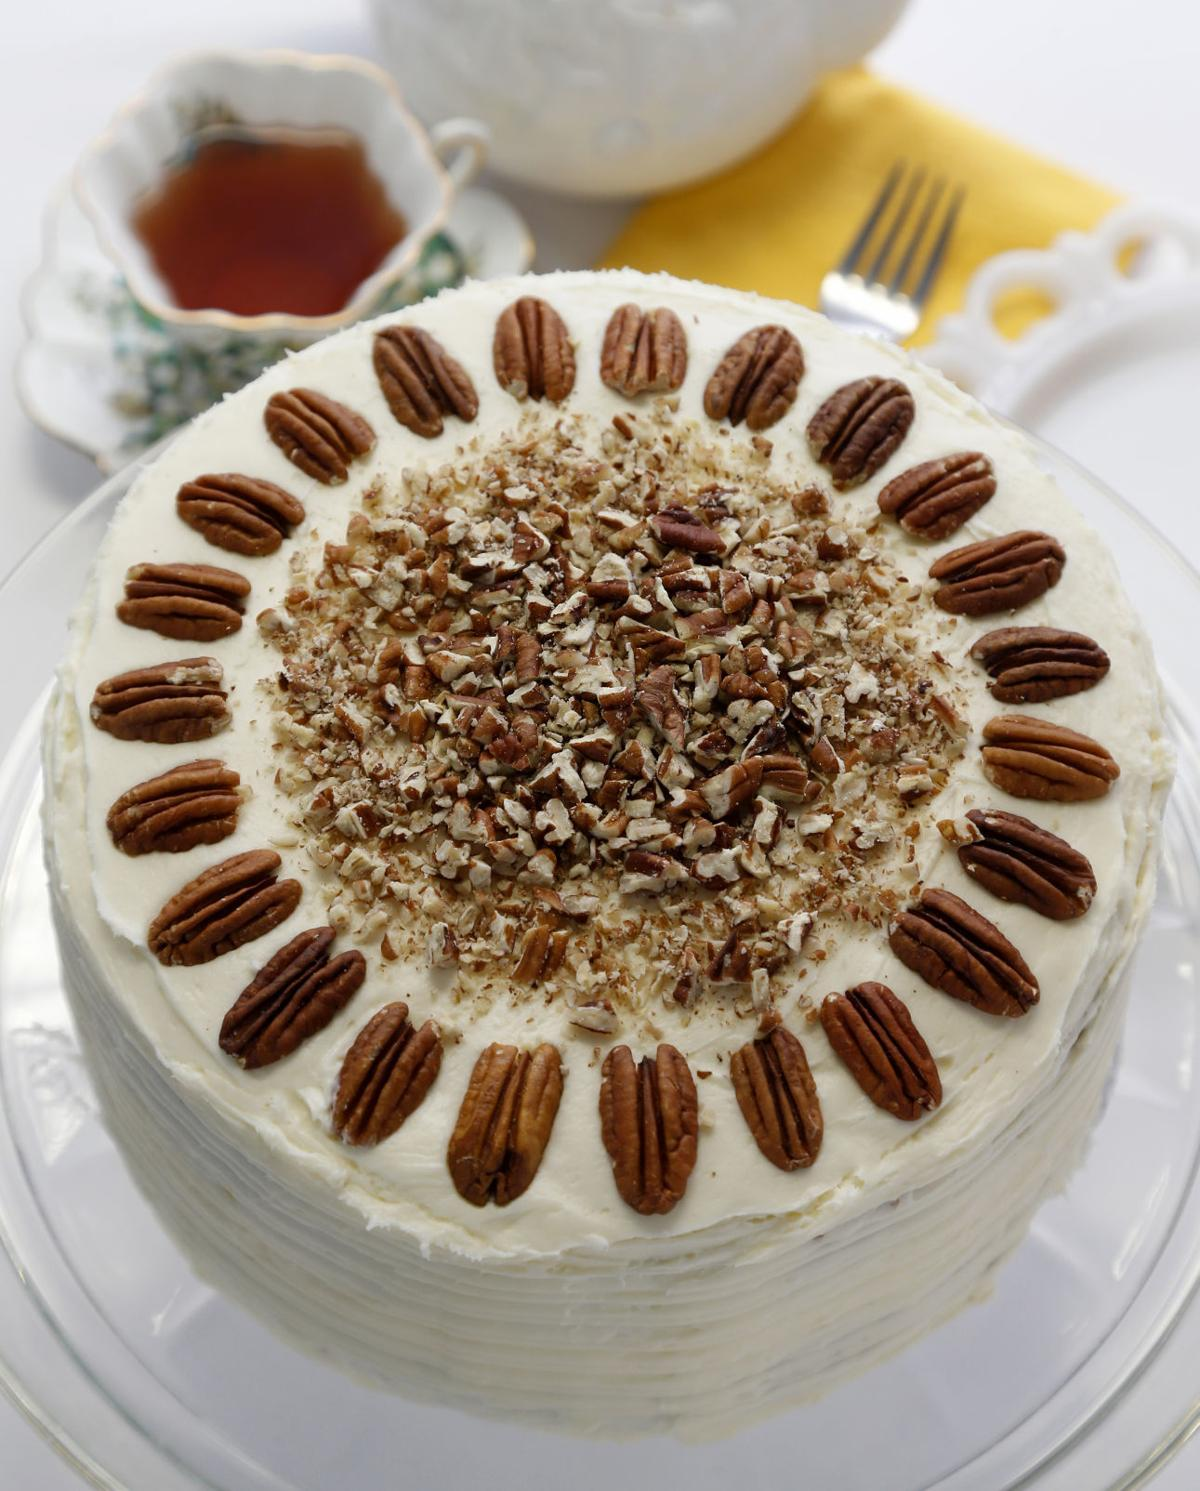 010518bp-MAIN-PHOTO-cvhg-hummingbird-cake-02